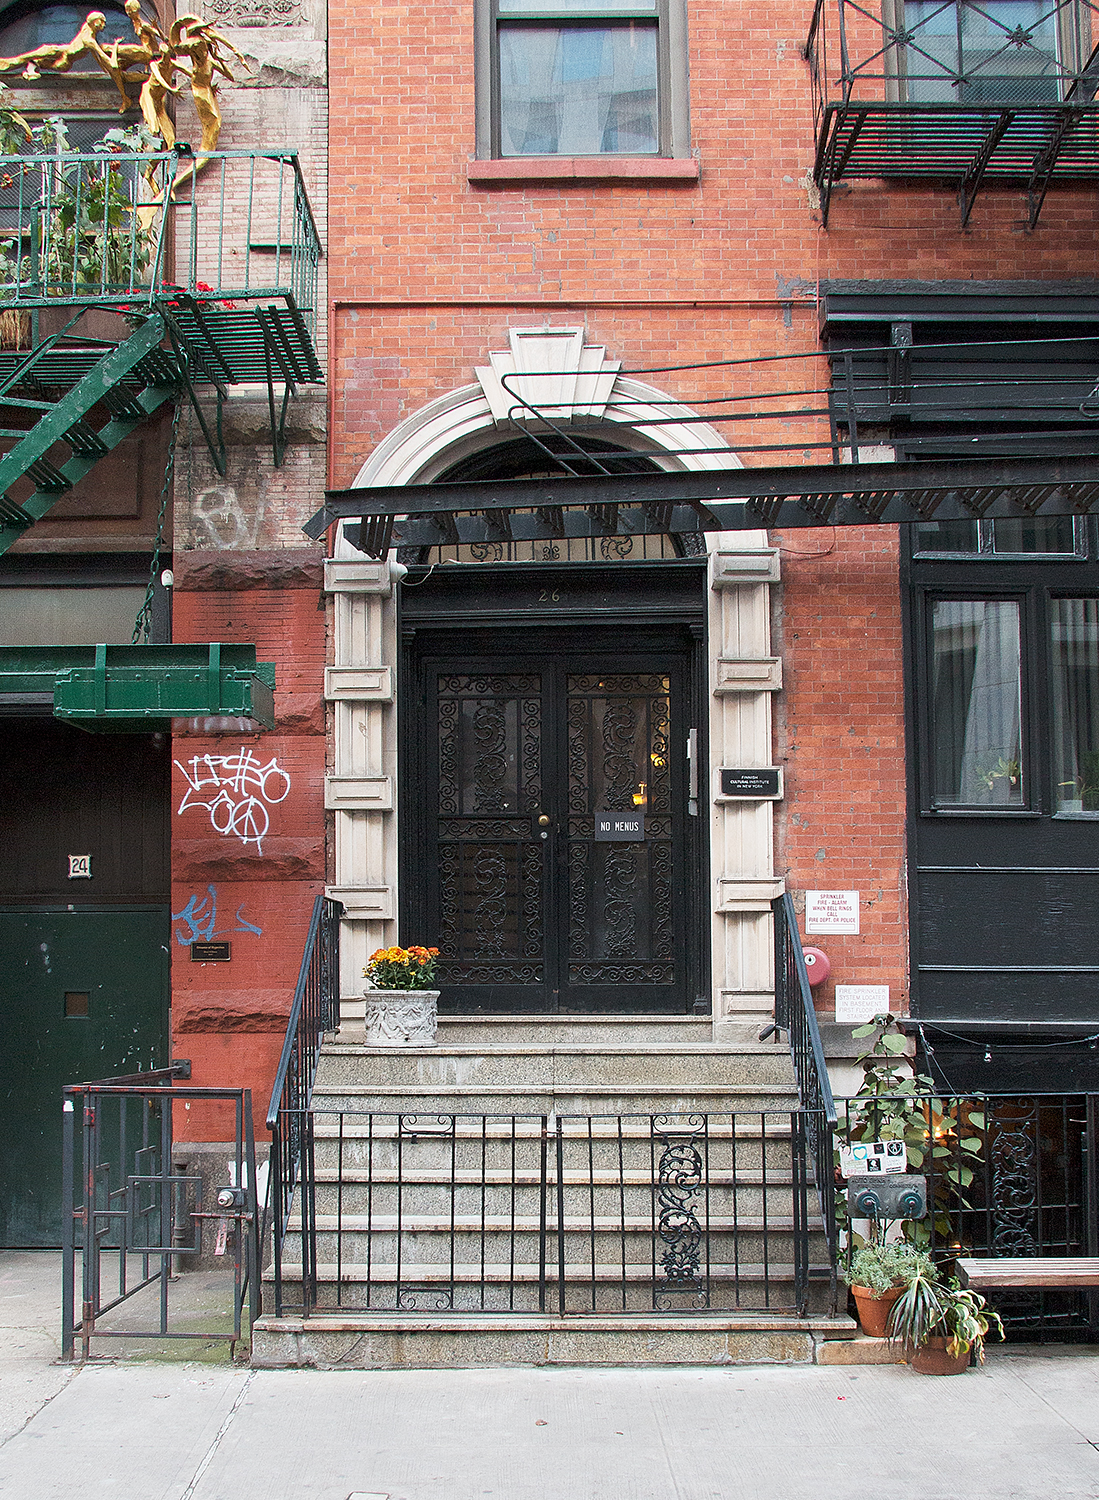 26 Bond St with its landmarked facade is one of the only townhouses left on the street. Our neighboring building's facade features the famous sculpture by artist Bruce Williams.